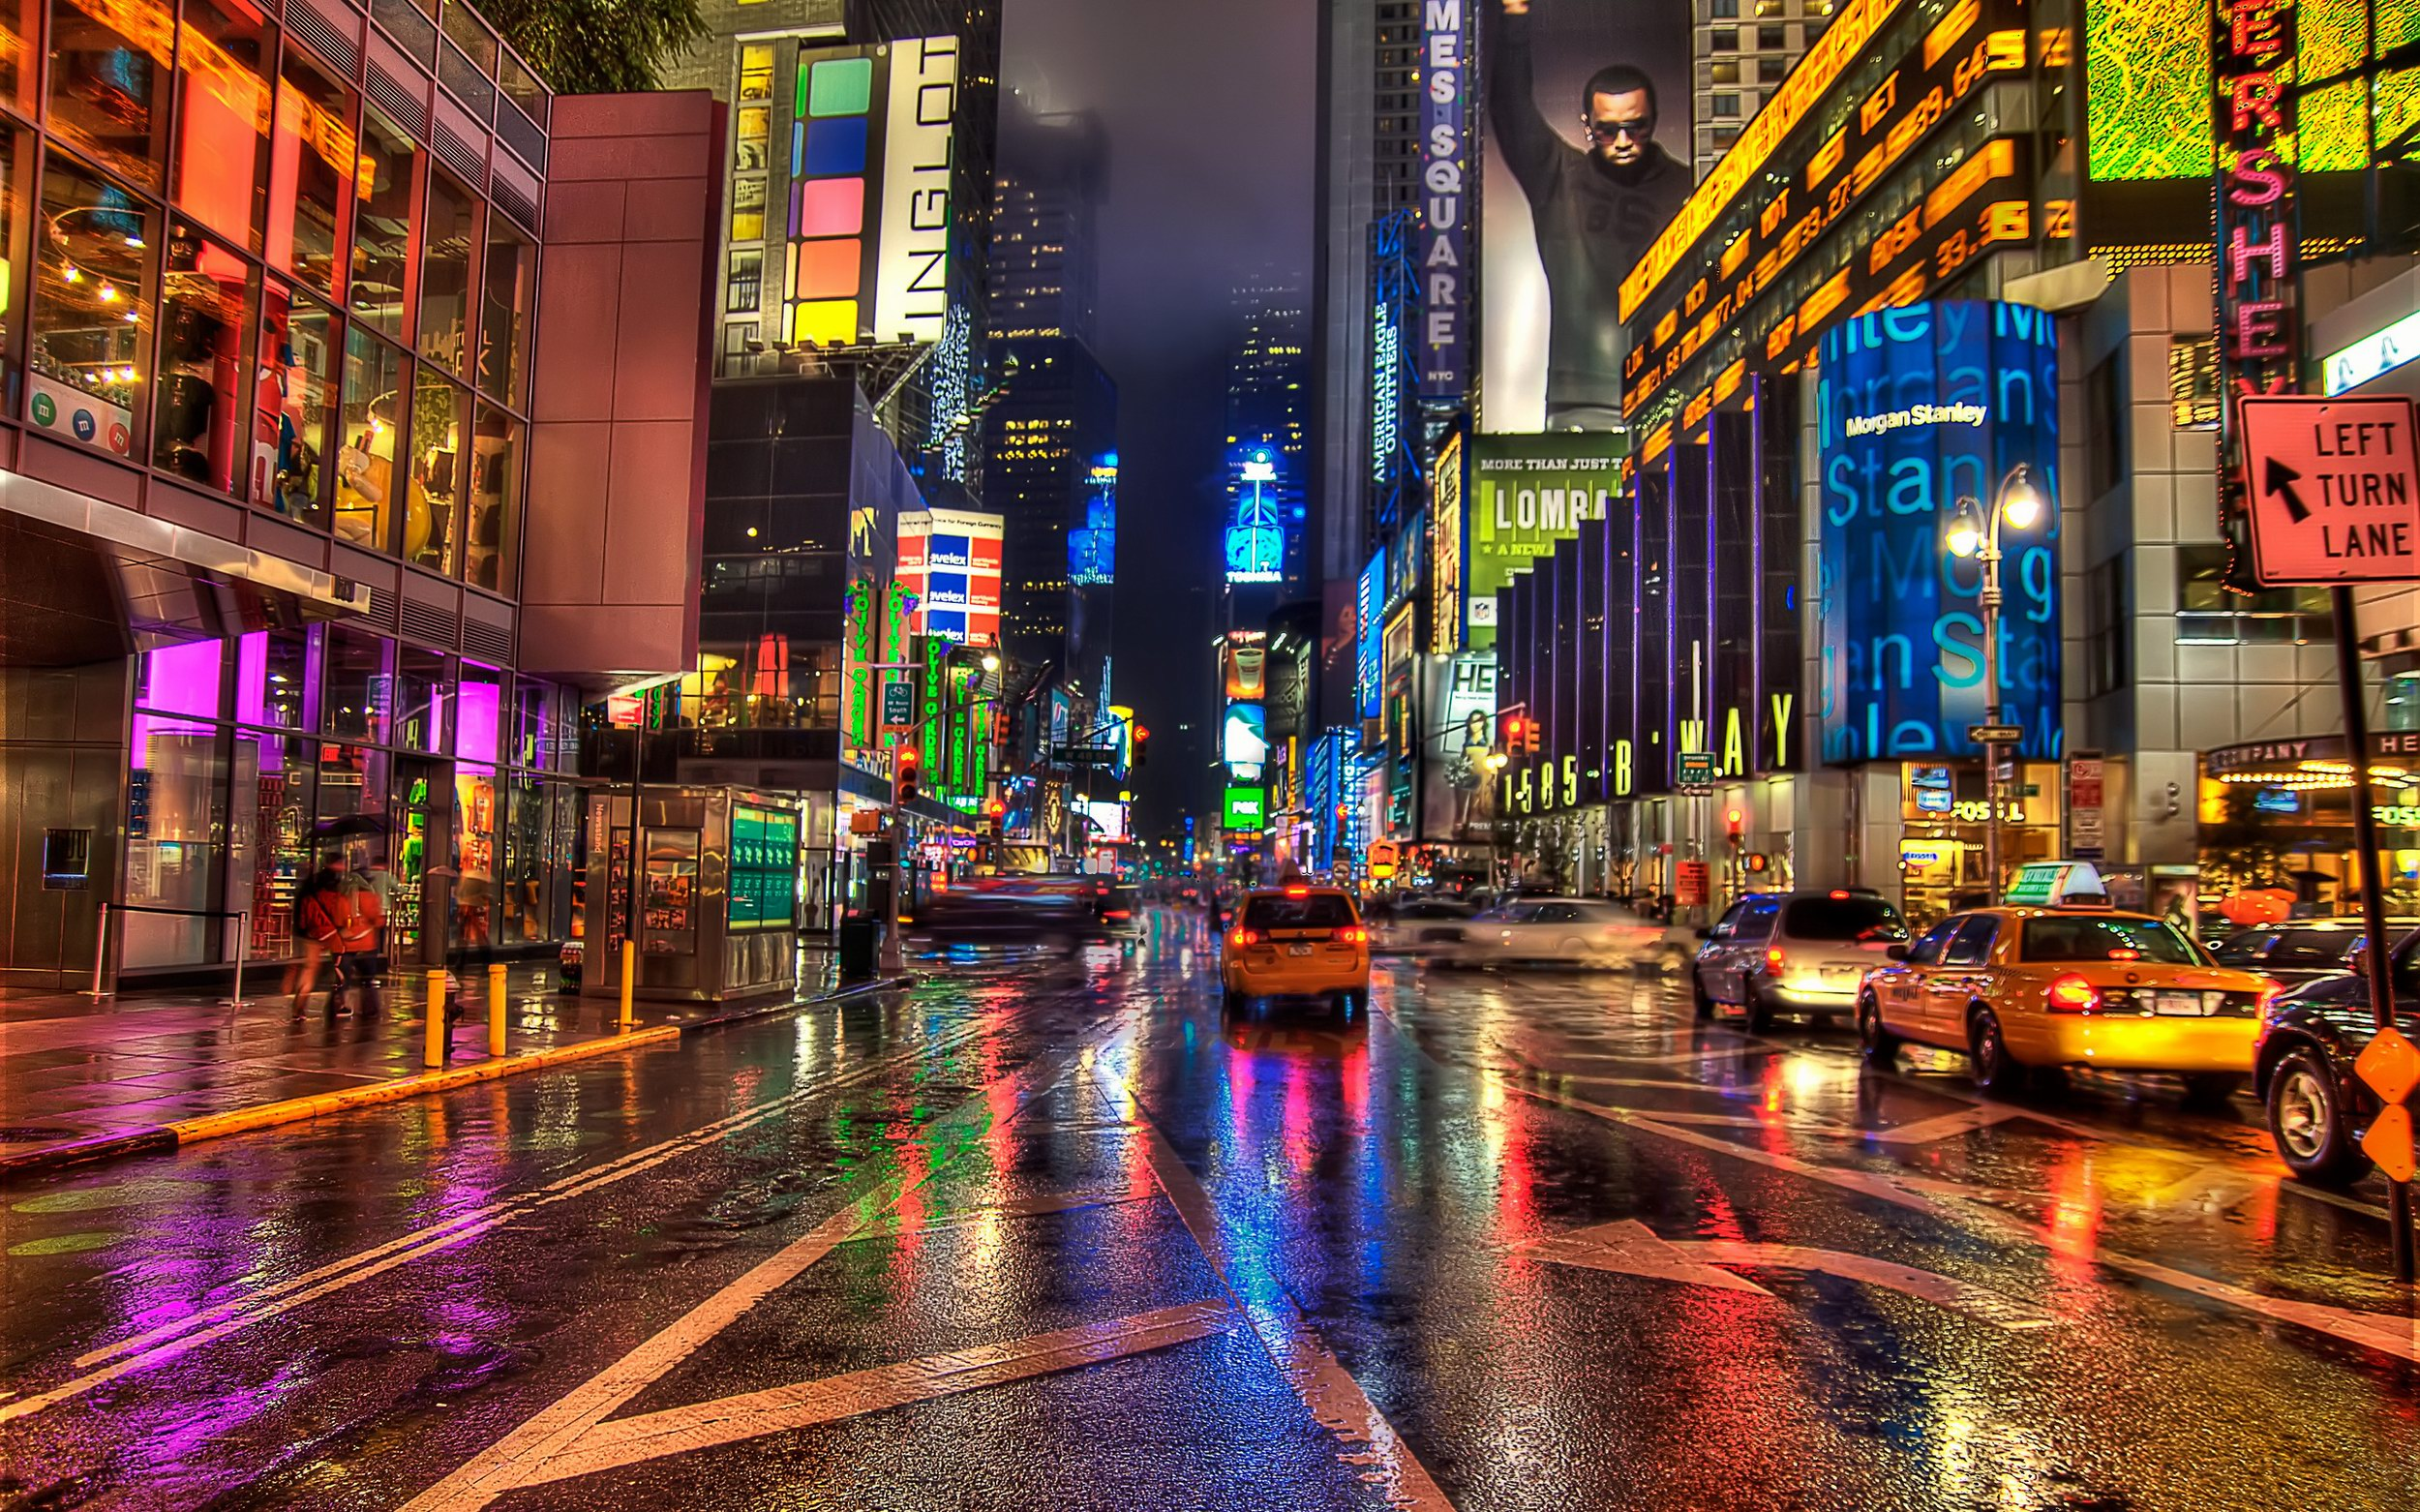 New York City Street Hd Wallpaper Pixelstalk Net